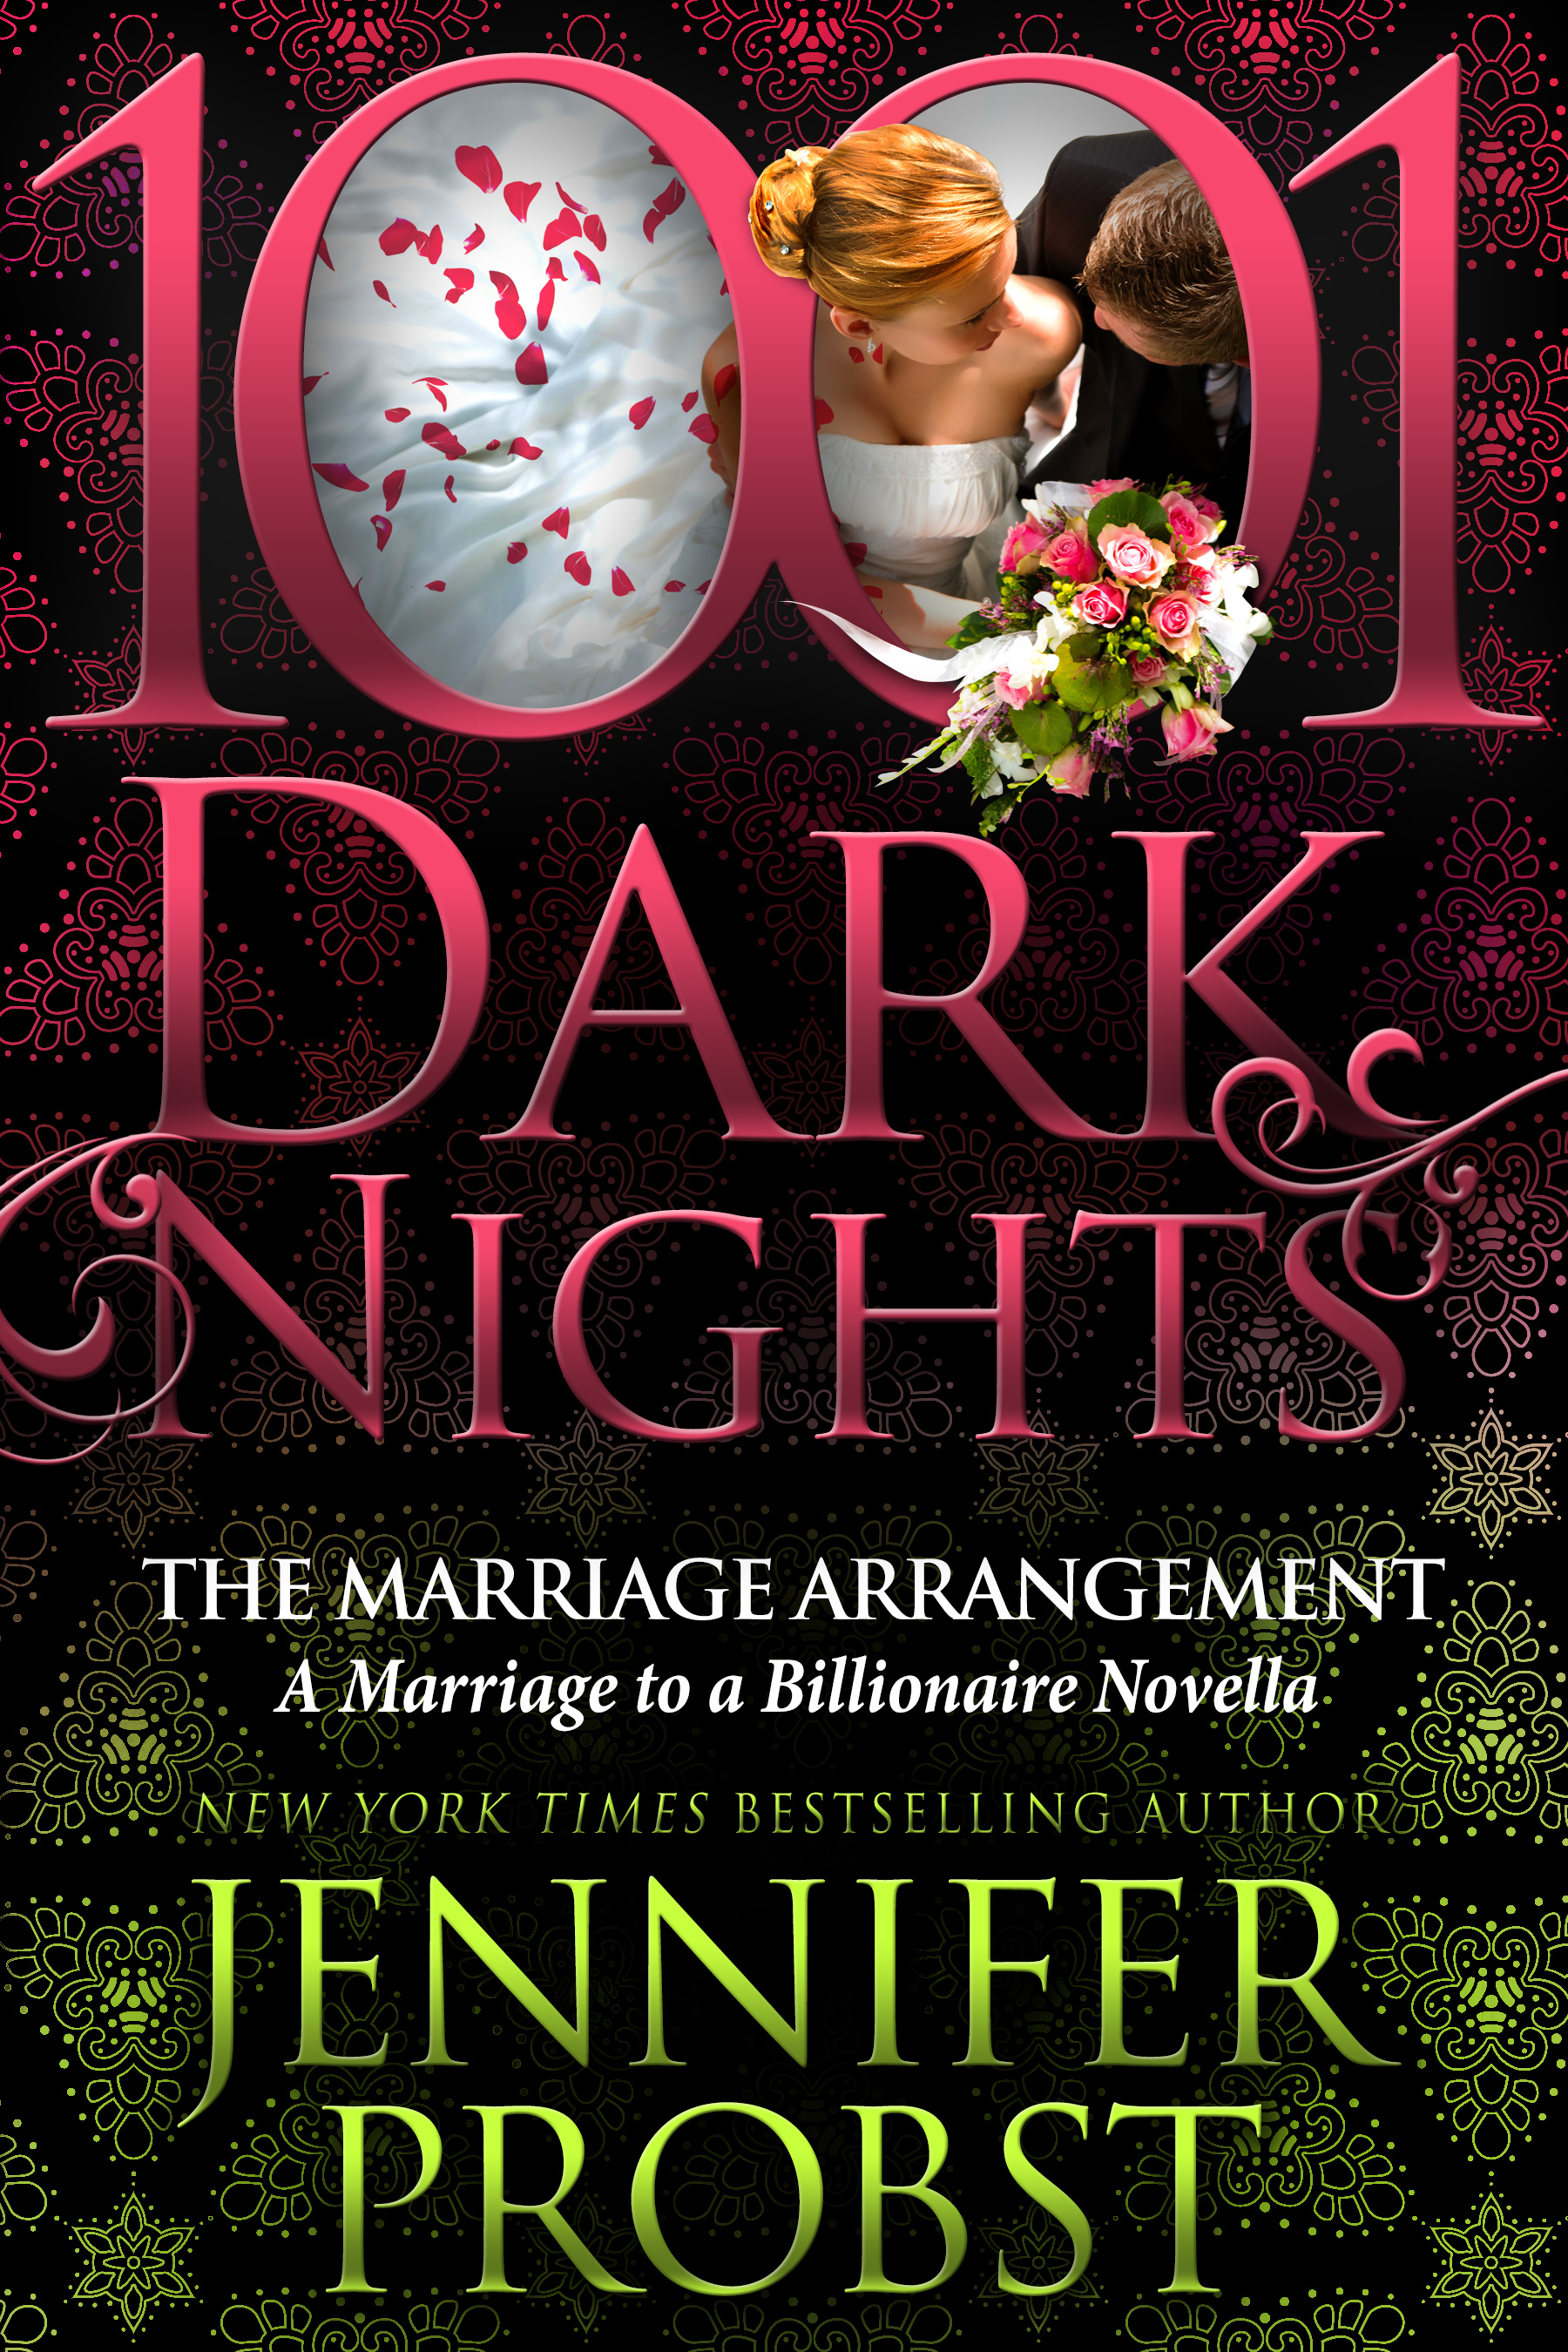 The Marriage Arrangement by Jennifer Probst